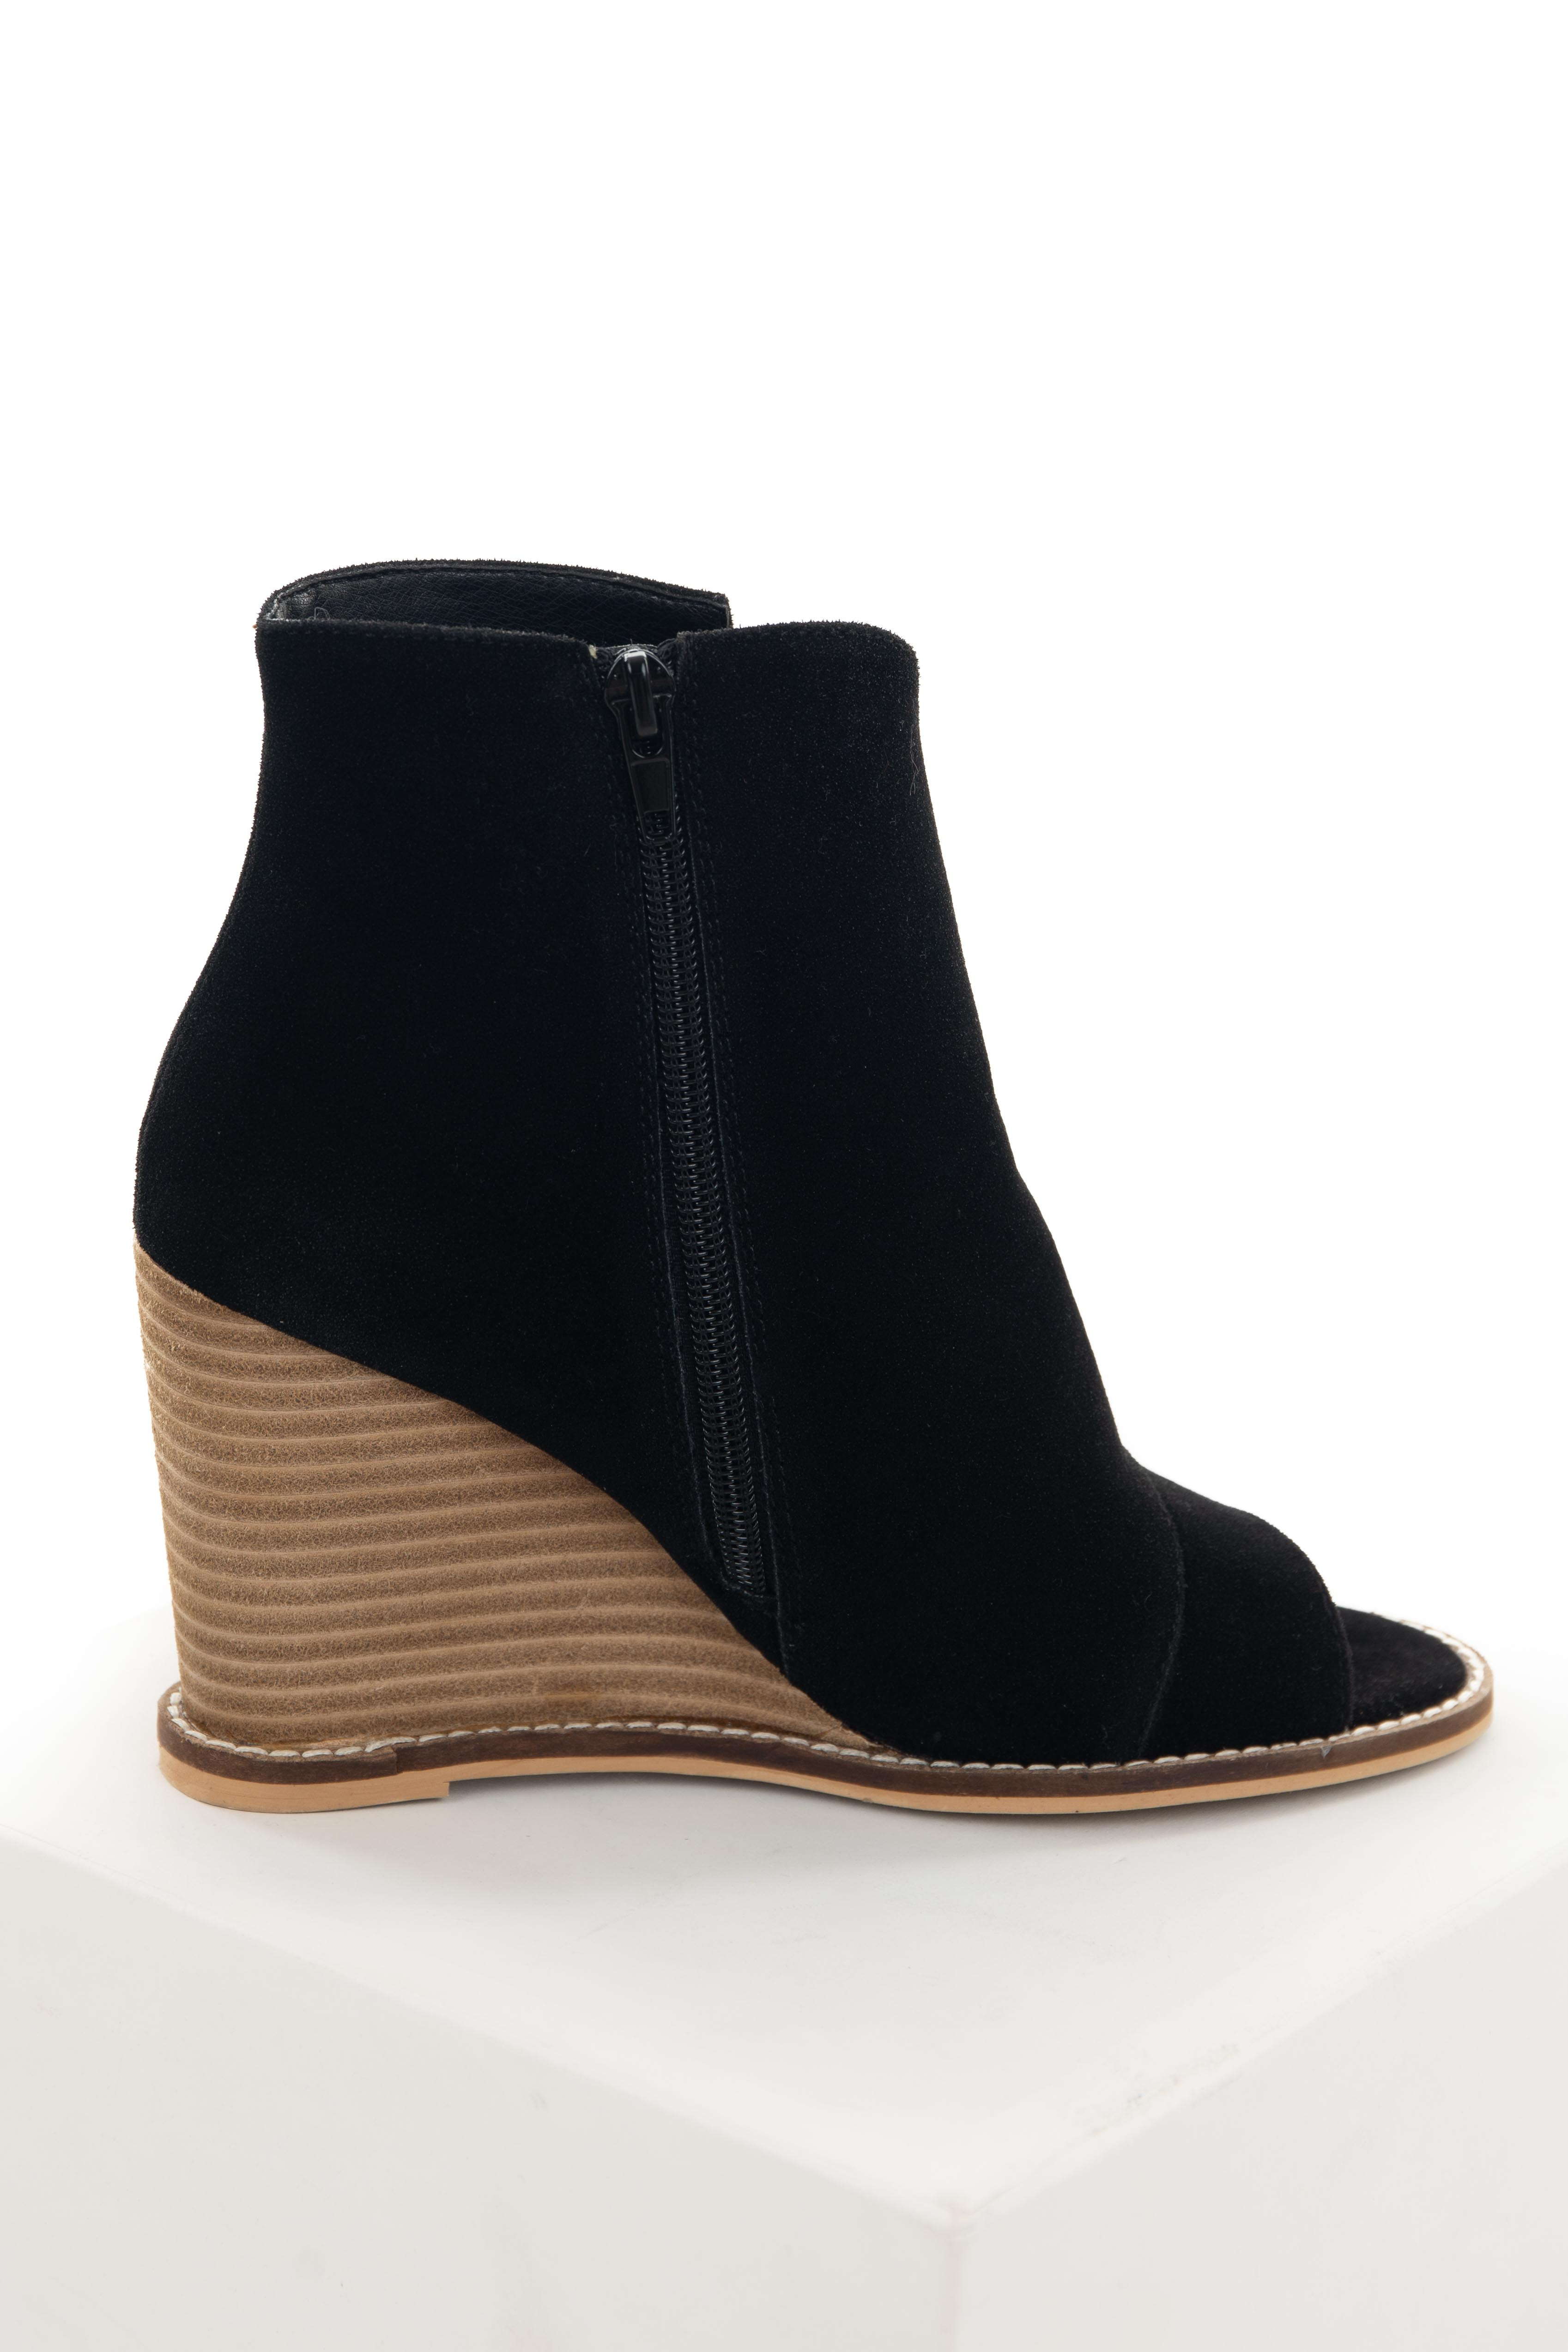 Black Textured Faux Wrap Wedge Booties